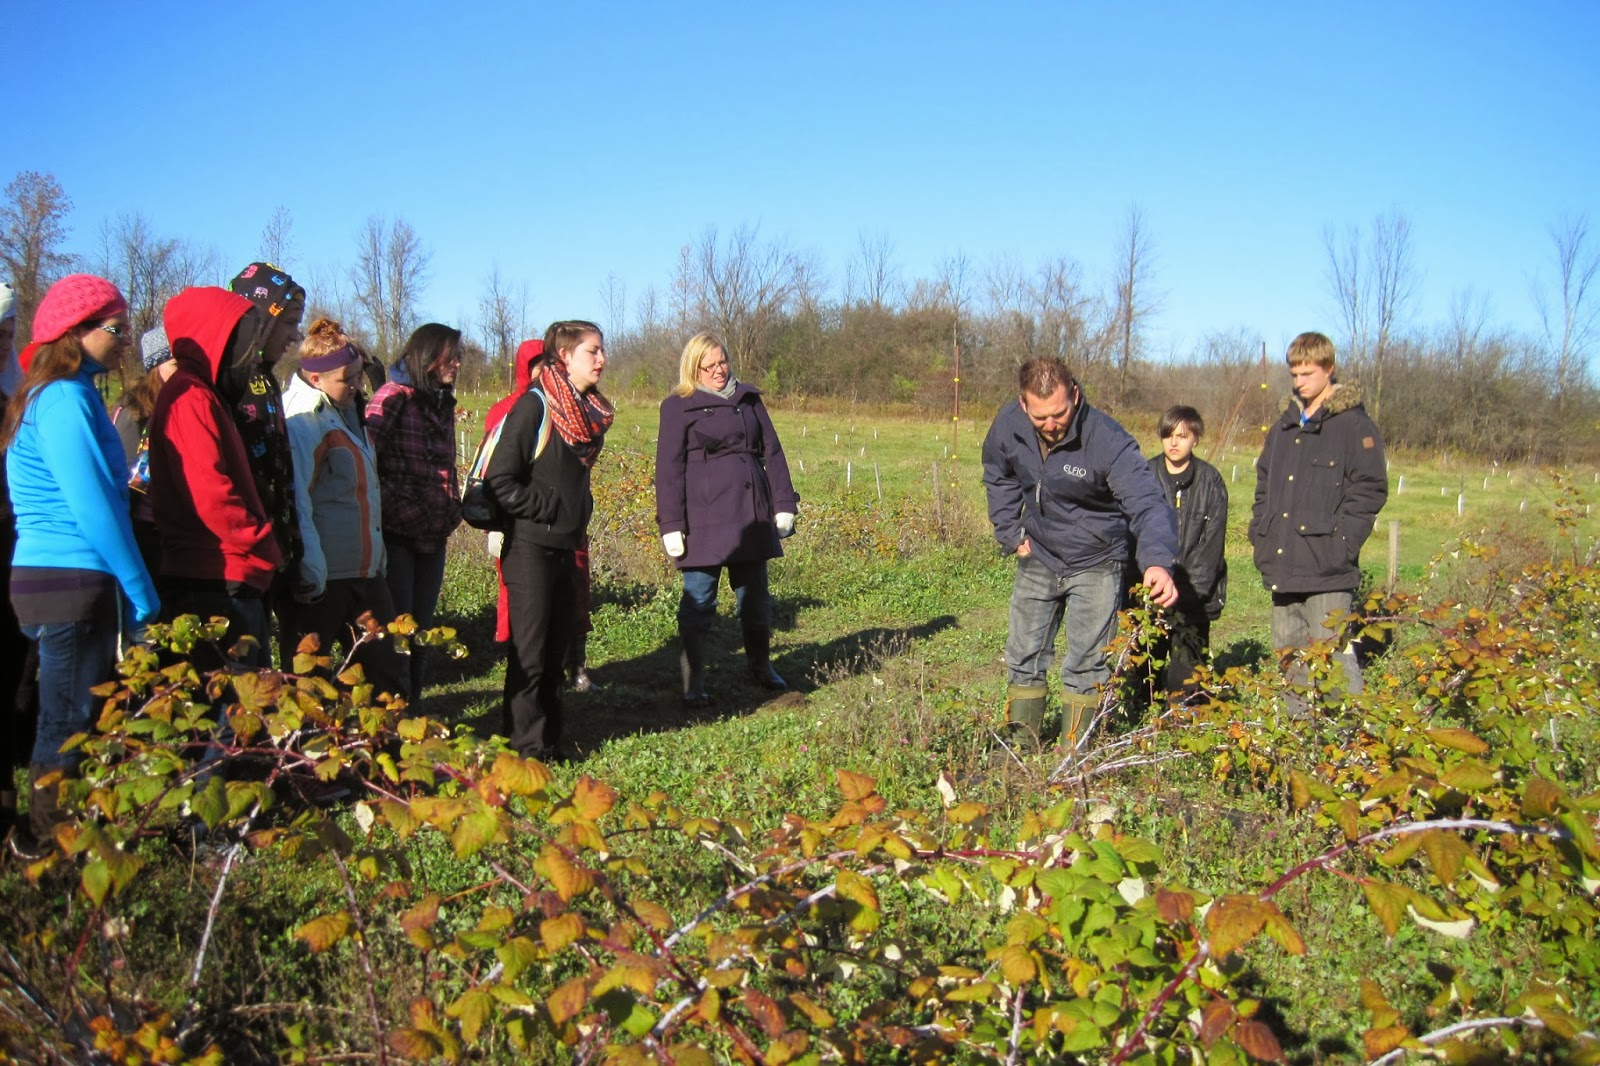 Bryan describes how black raspberries are cultivated, as well as how the canes (plants) flop over onto the soil and root.